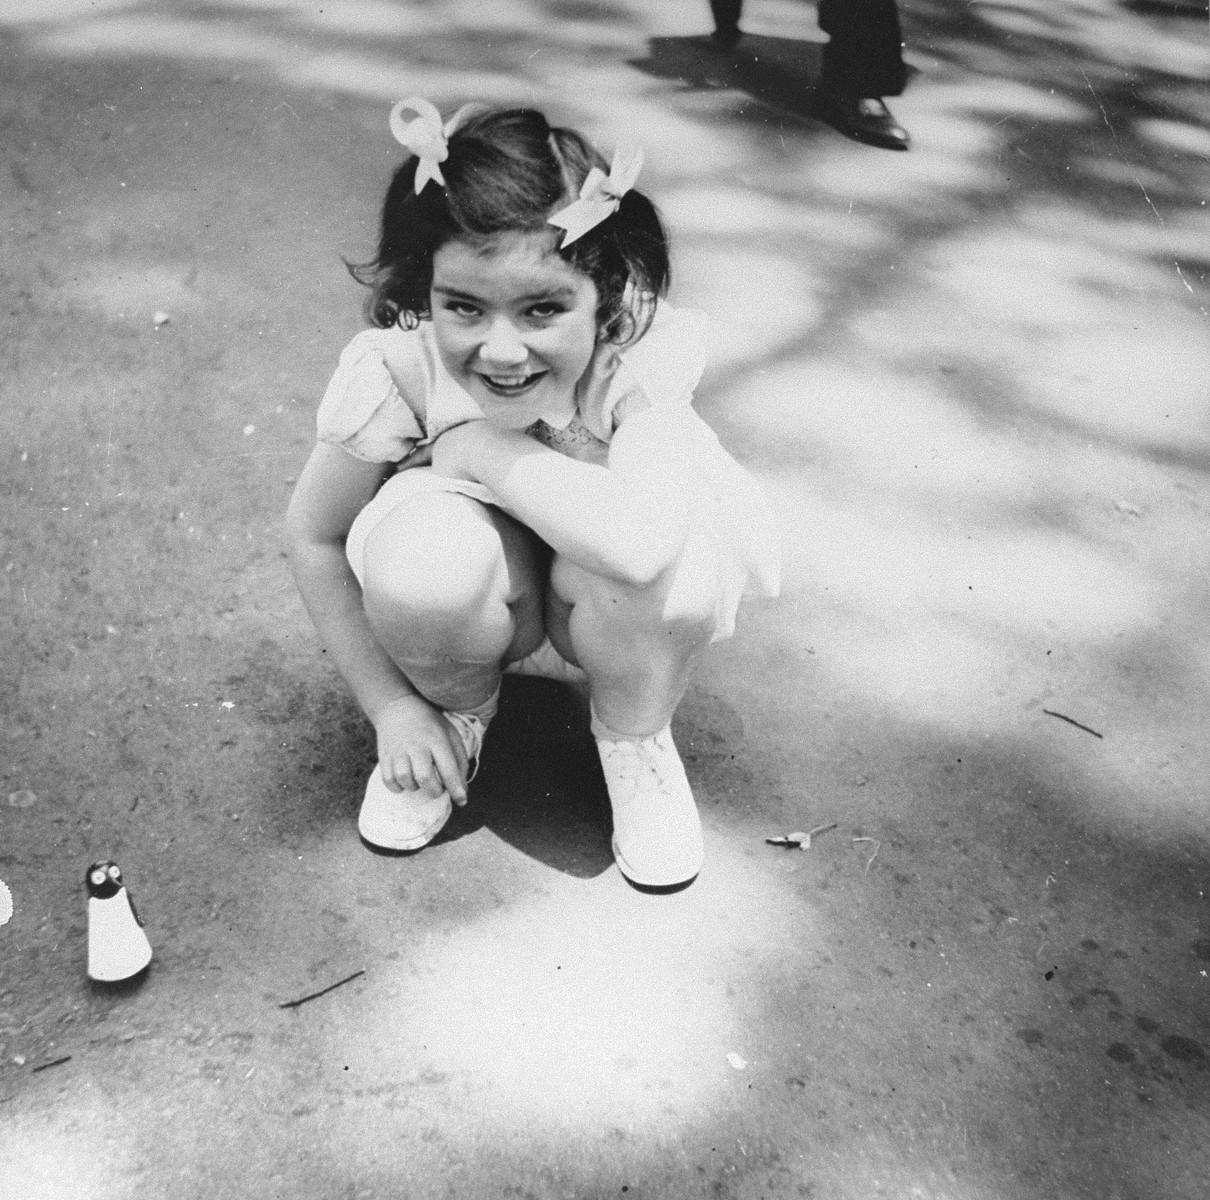 A young Jewish girl who is living in hiding in German-occupied France, plays outside with a toy.  Pictured is Josette Glicenstein.